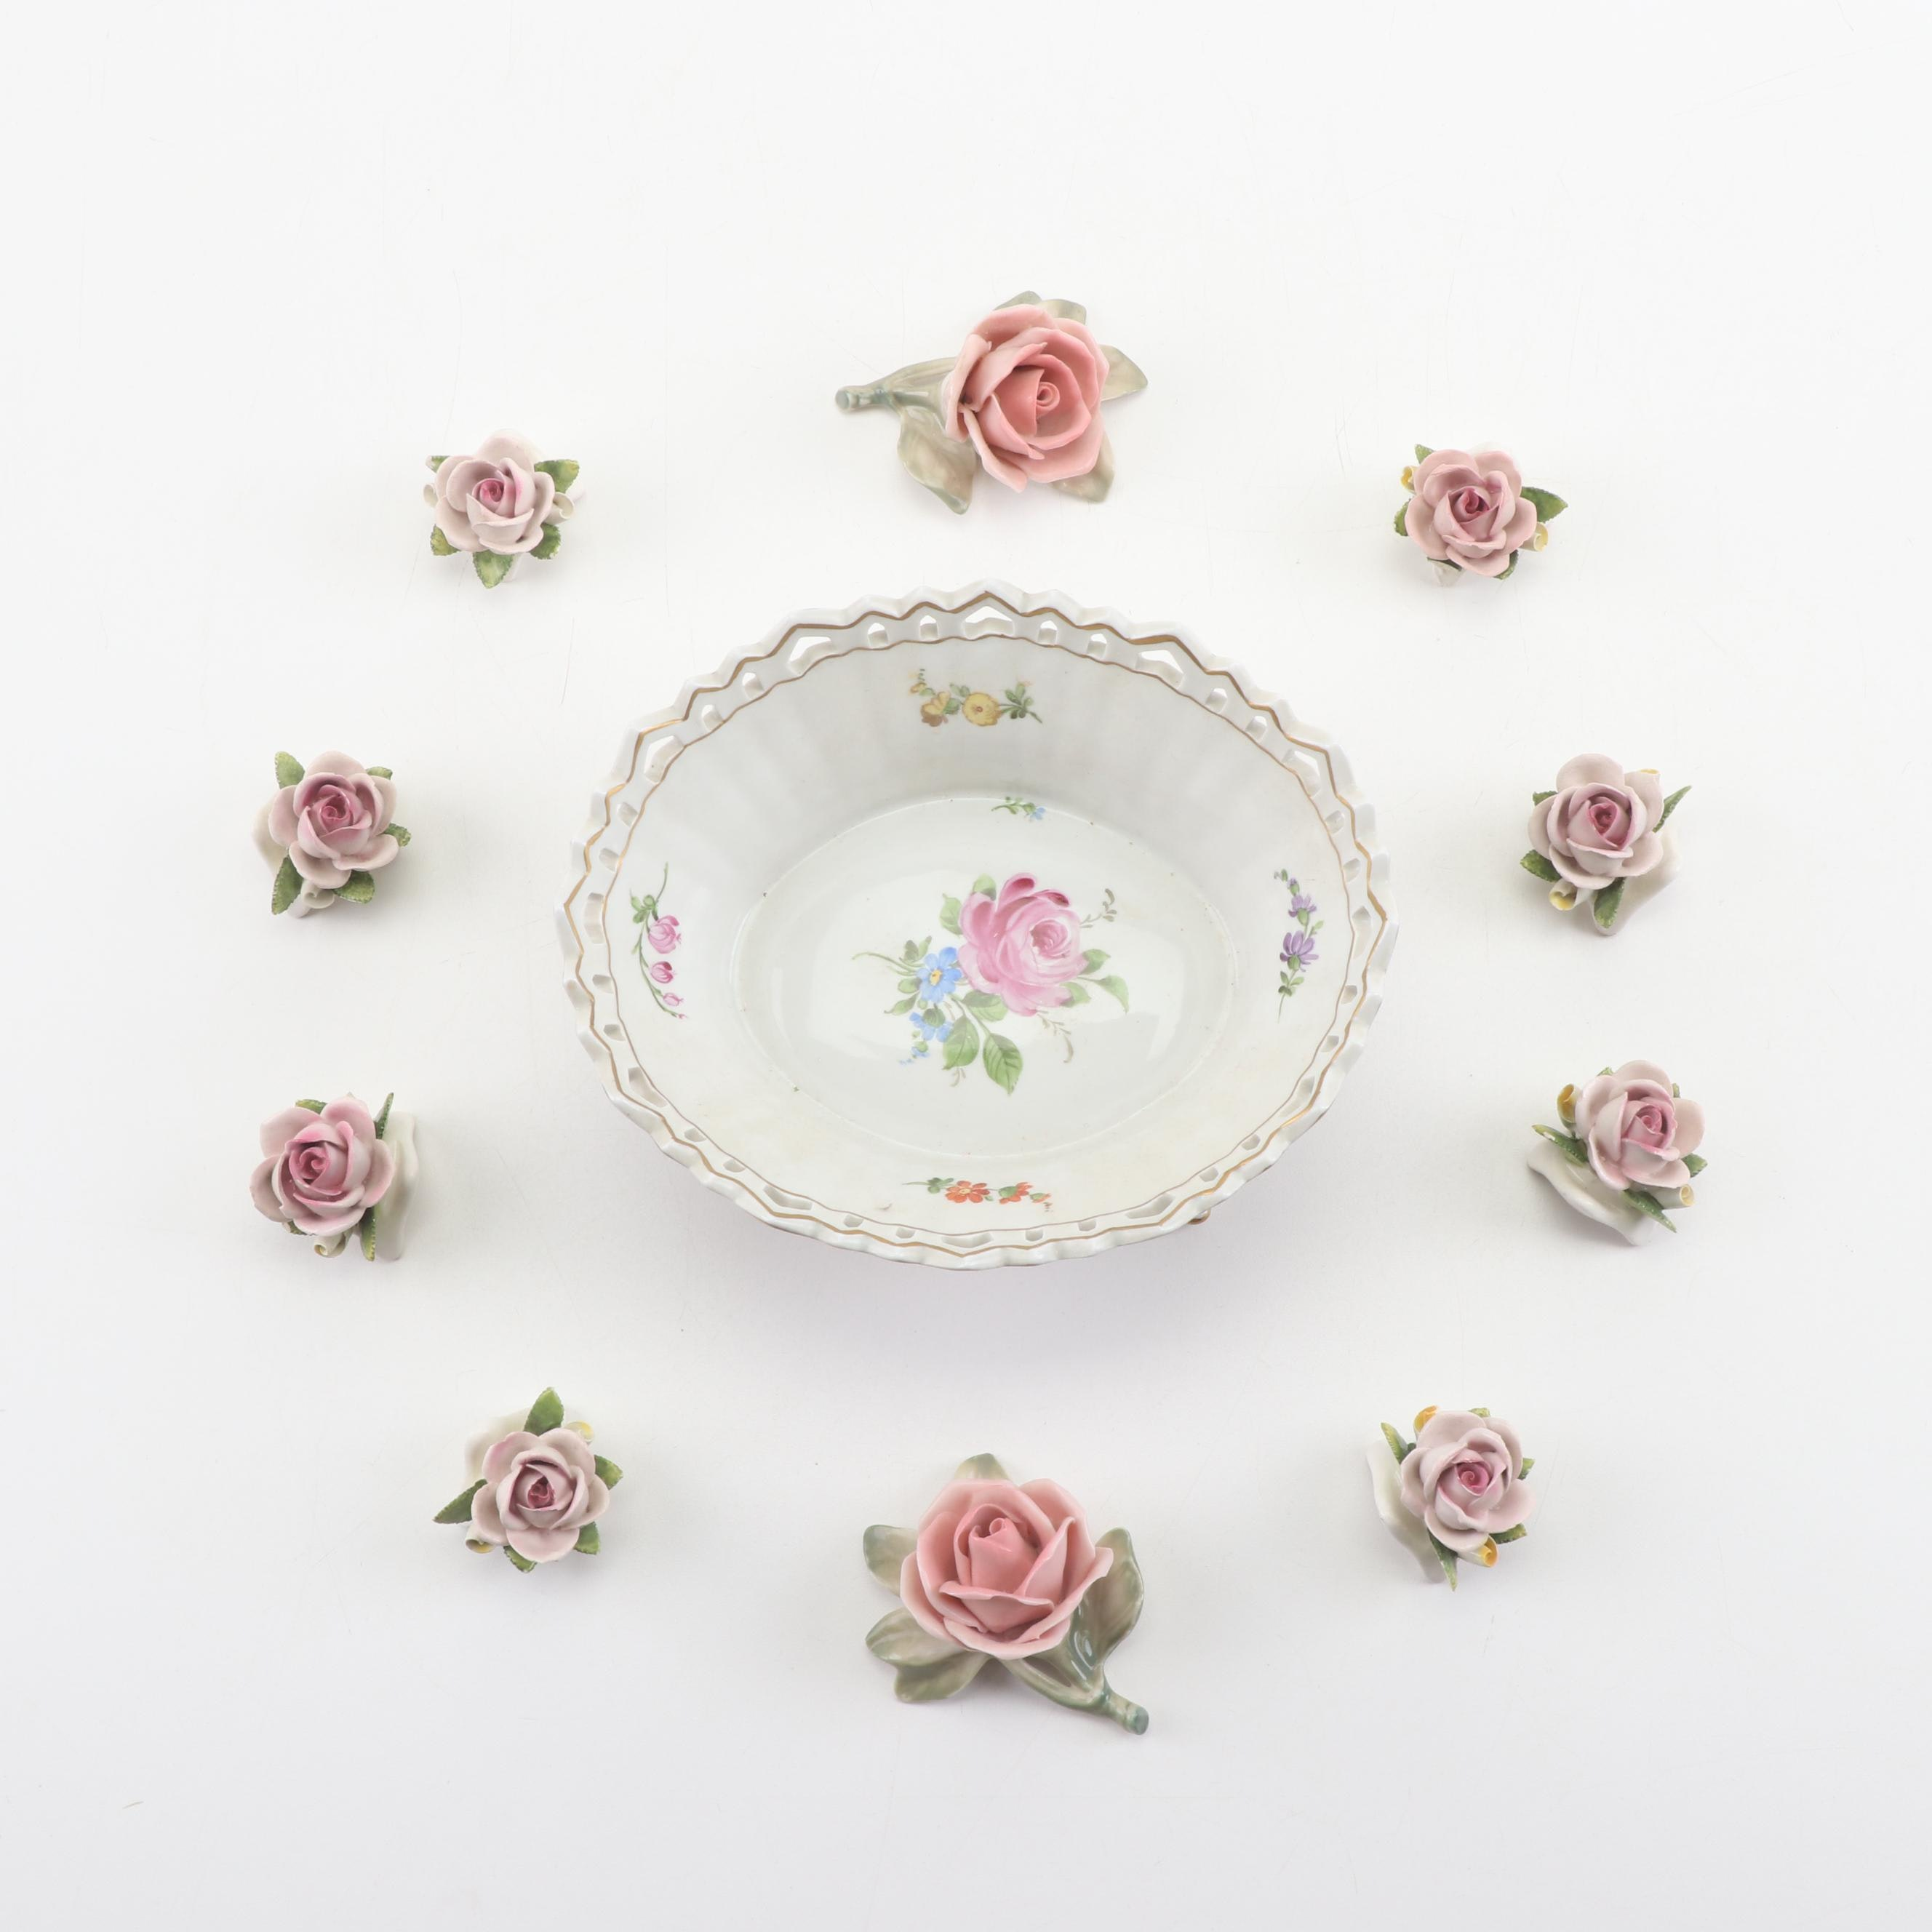 Porcelain Reticulated Bowl with Roses, Late 19th to Early 20th Century